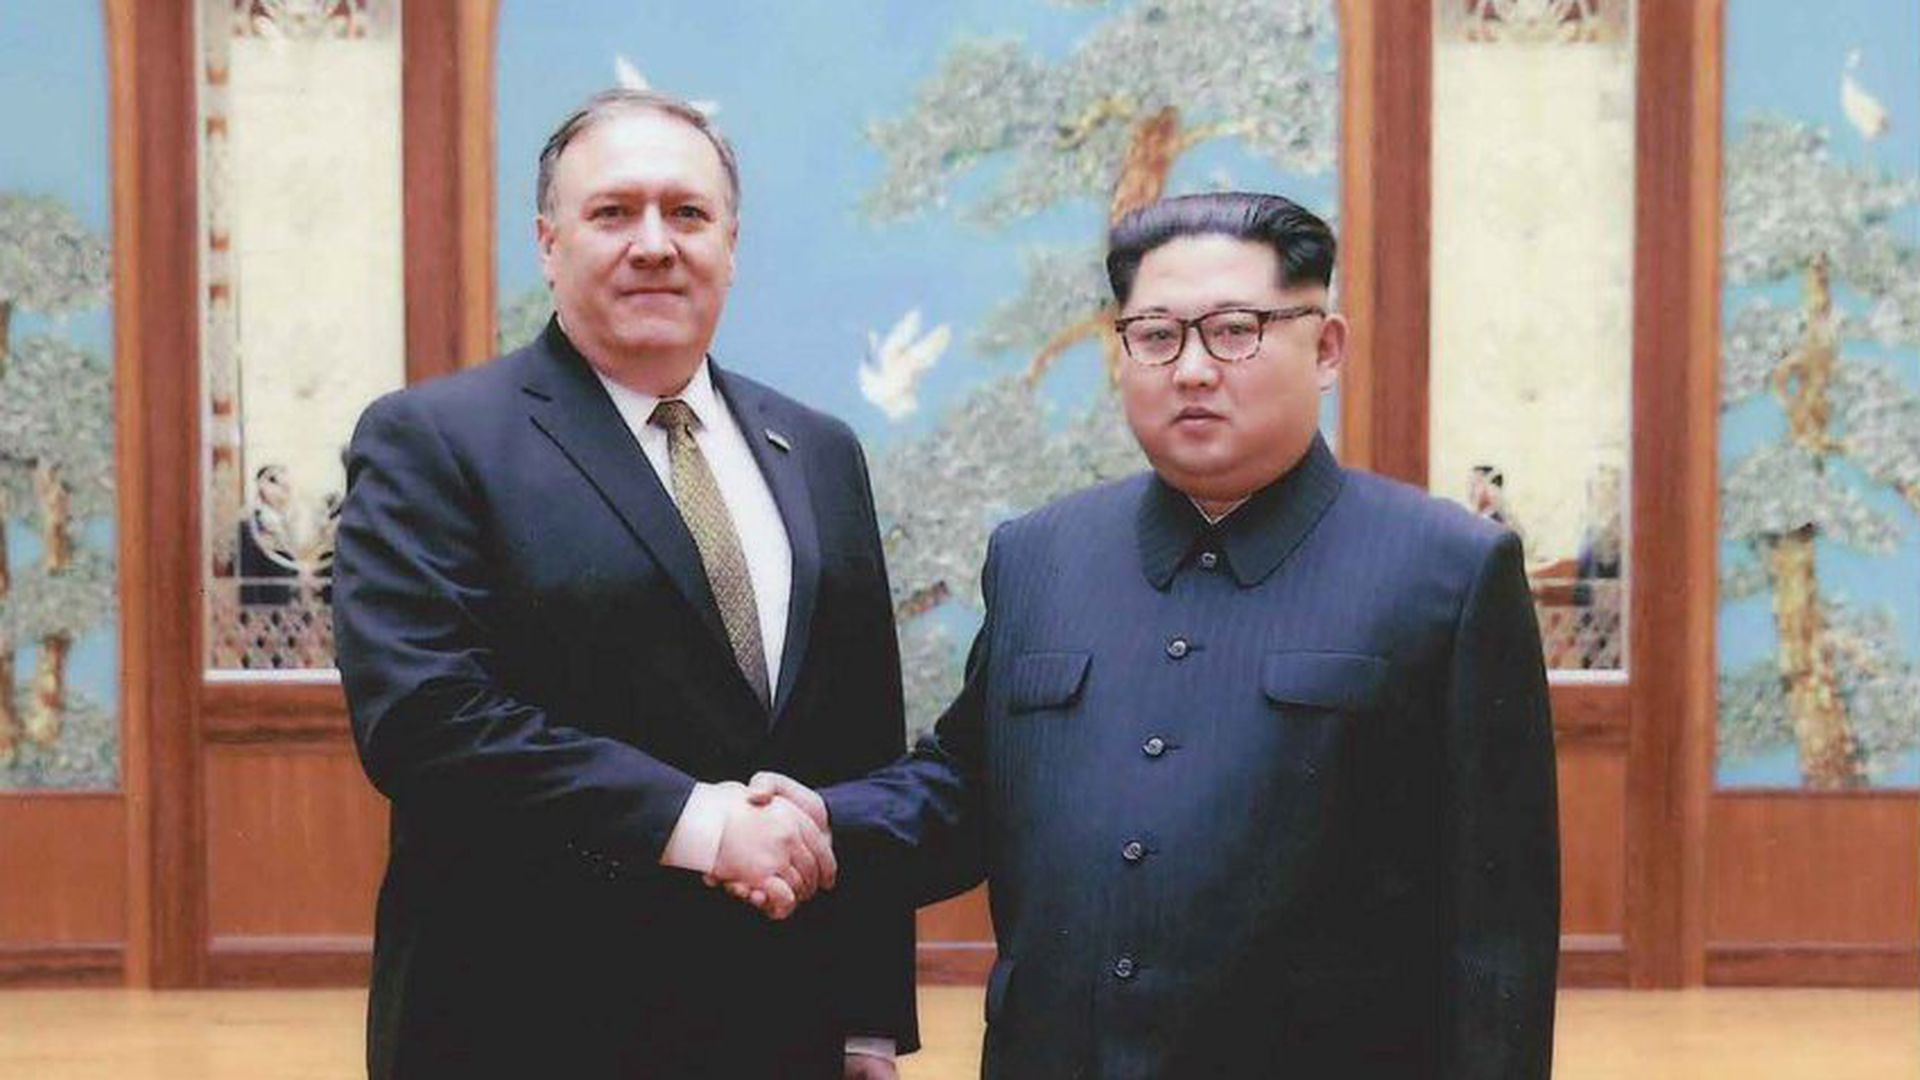 A U.S. government handout photo released by White House Press Secretary Sarah Huckabee Sanders shows U.S. Central Intelligence (CIA) Director Mike Pompeo meeting with North Korean leader Kim Jung Un in Pyongyang, North Korea in a photo taken over Easter weekend 2018. (U.S. Government via Reuters)